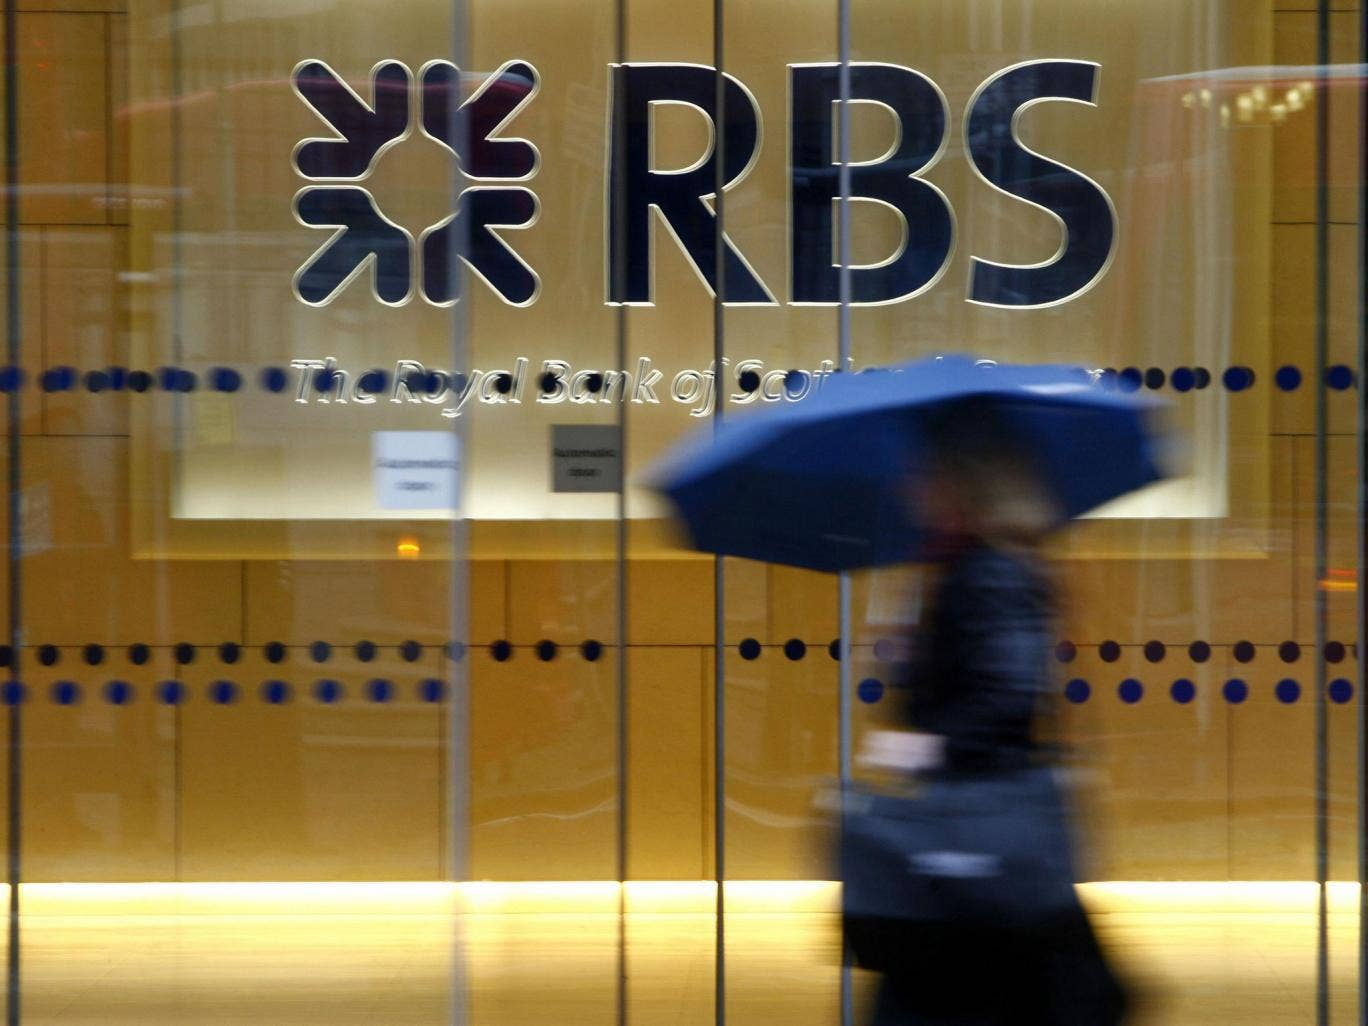 Royal Bank of Scotland is facing an inquiry by banking regulators